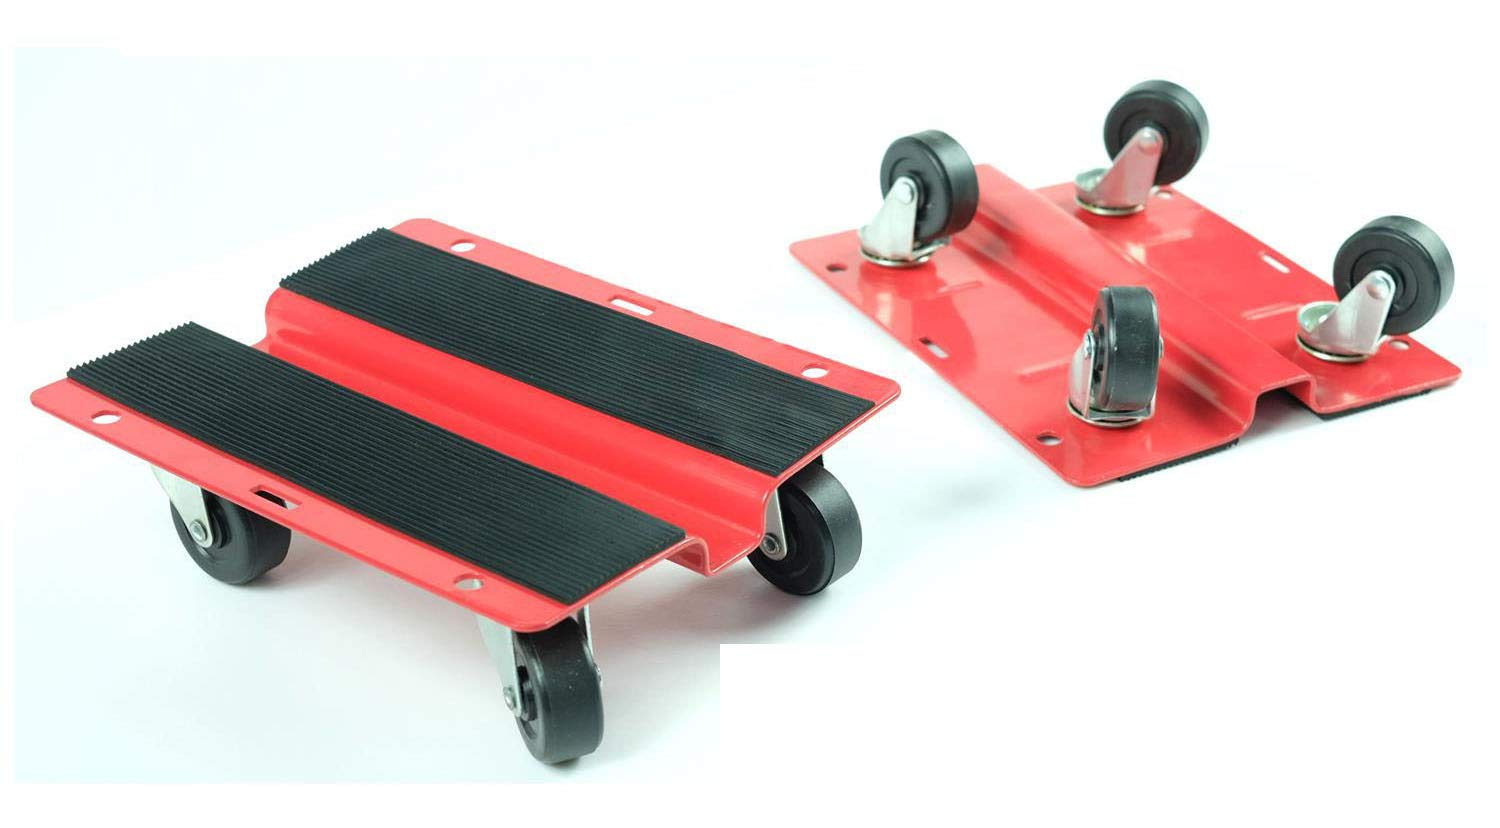 KASTFORCE KF2018 Utility Dolly Kit of Pair 8 inch x 10 inch Steel Dollies,Snowmobile Dolly, Material Mover